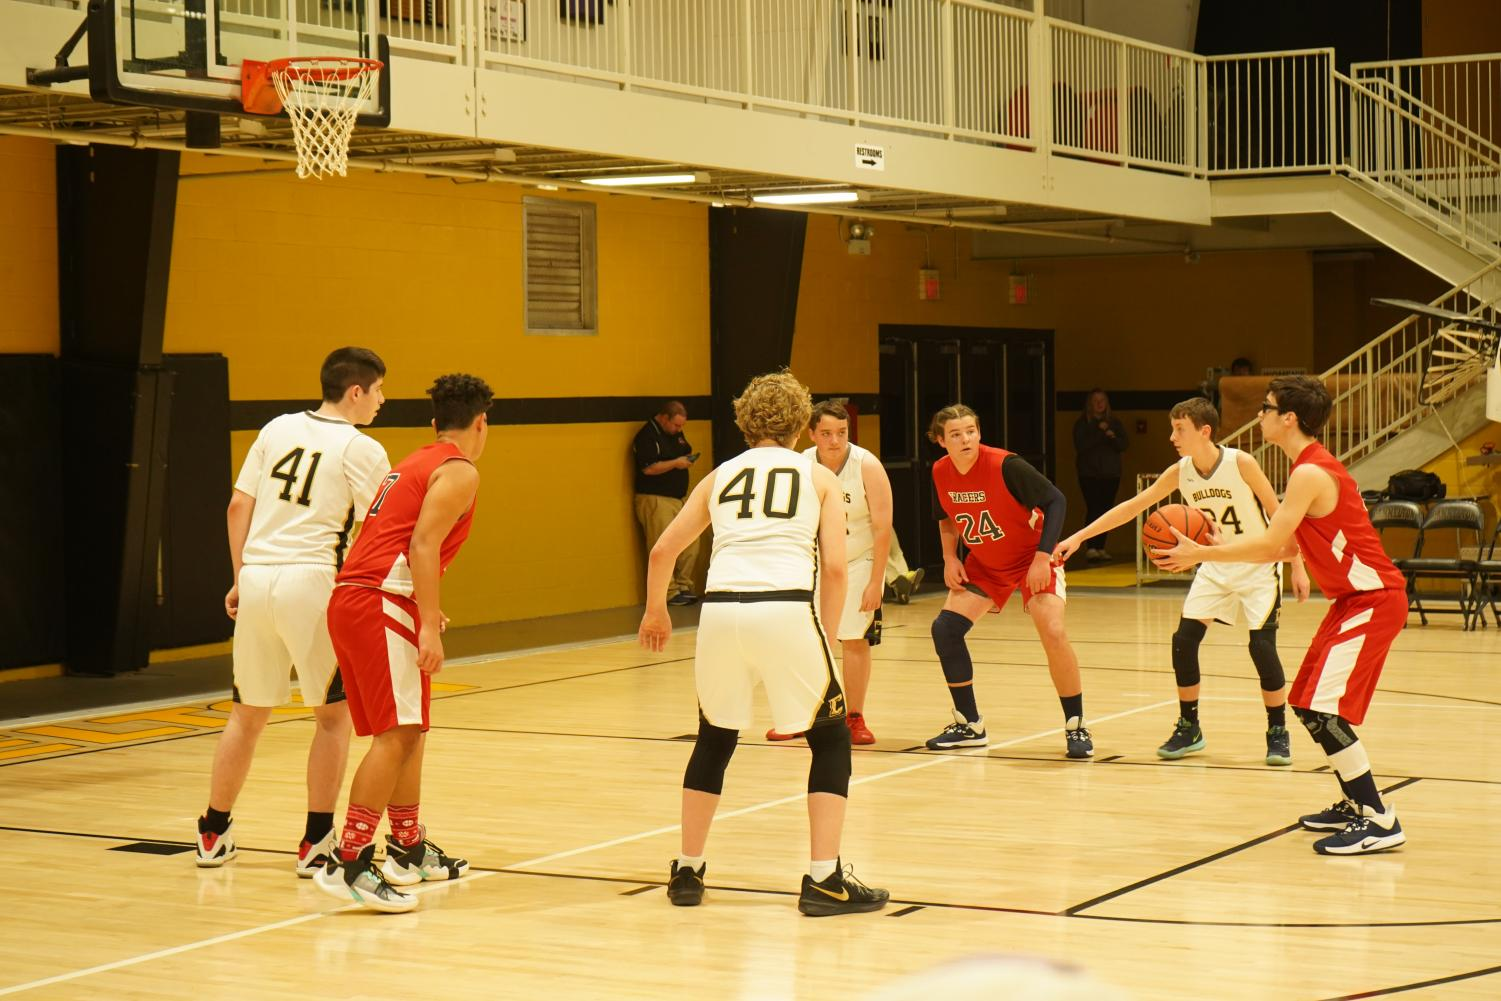 The boys getting ready to block out as opposing teammate shoots.